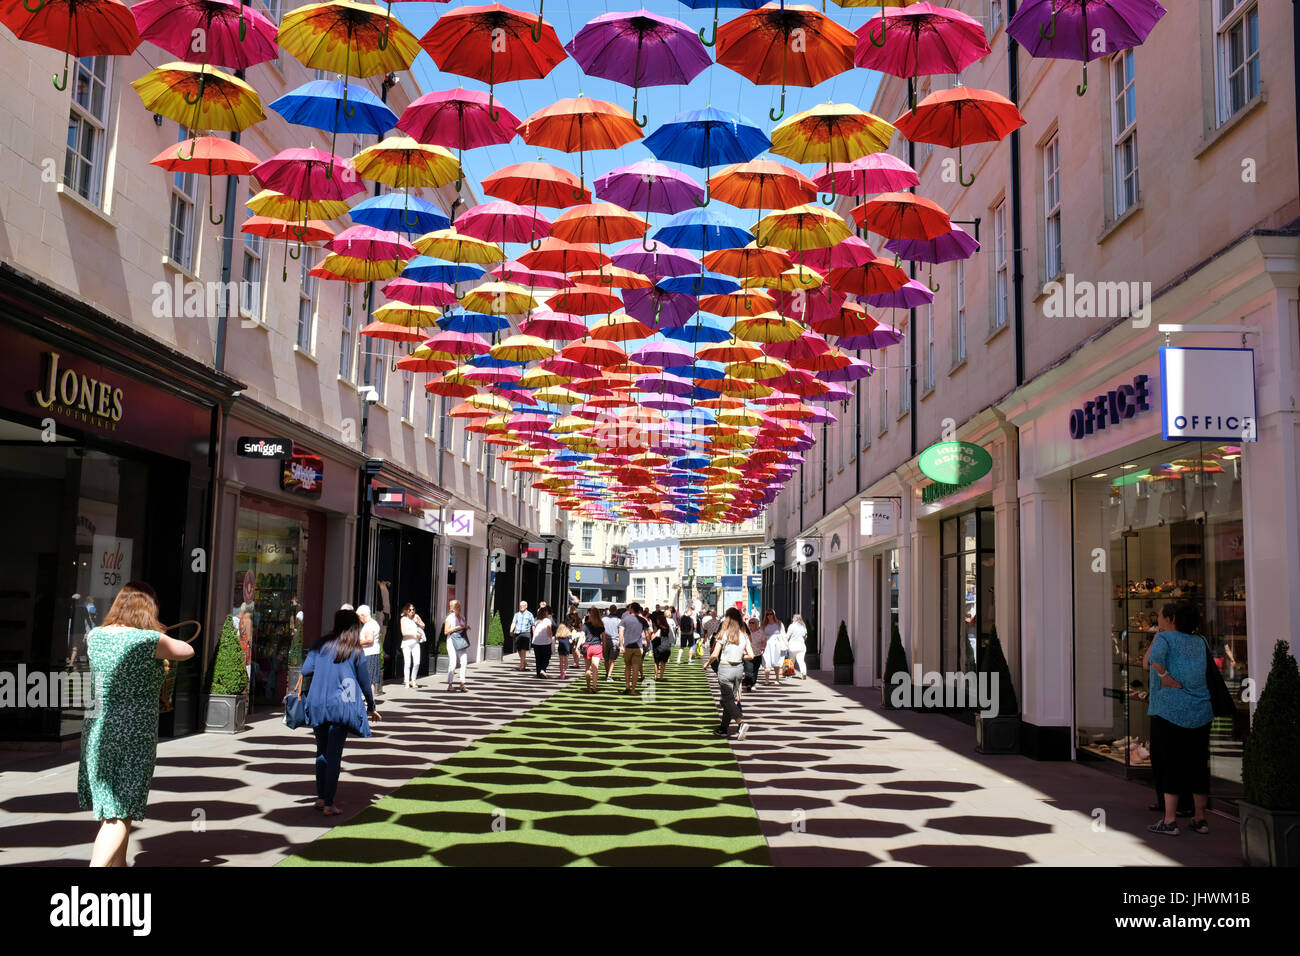 Ombrage parasols une rue de Bath, Angleterre Photo Stock